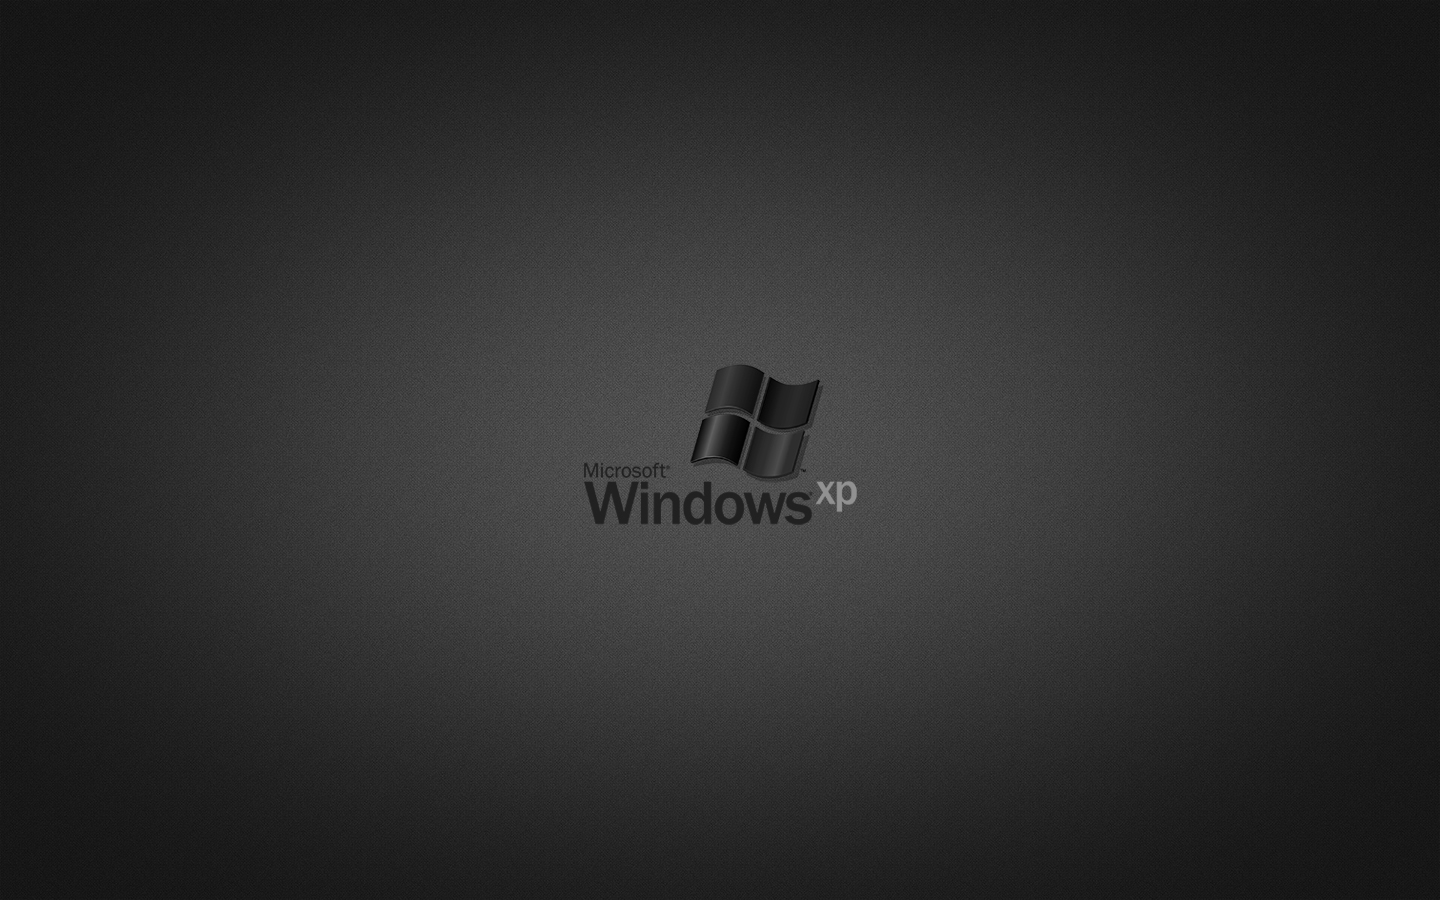 Wallpaper Hd 1080p Free Download For Windows Xp Wallpapers